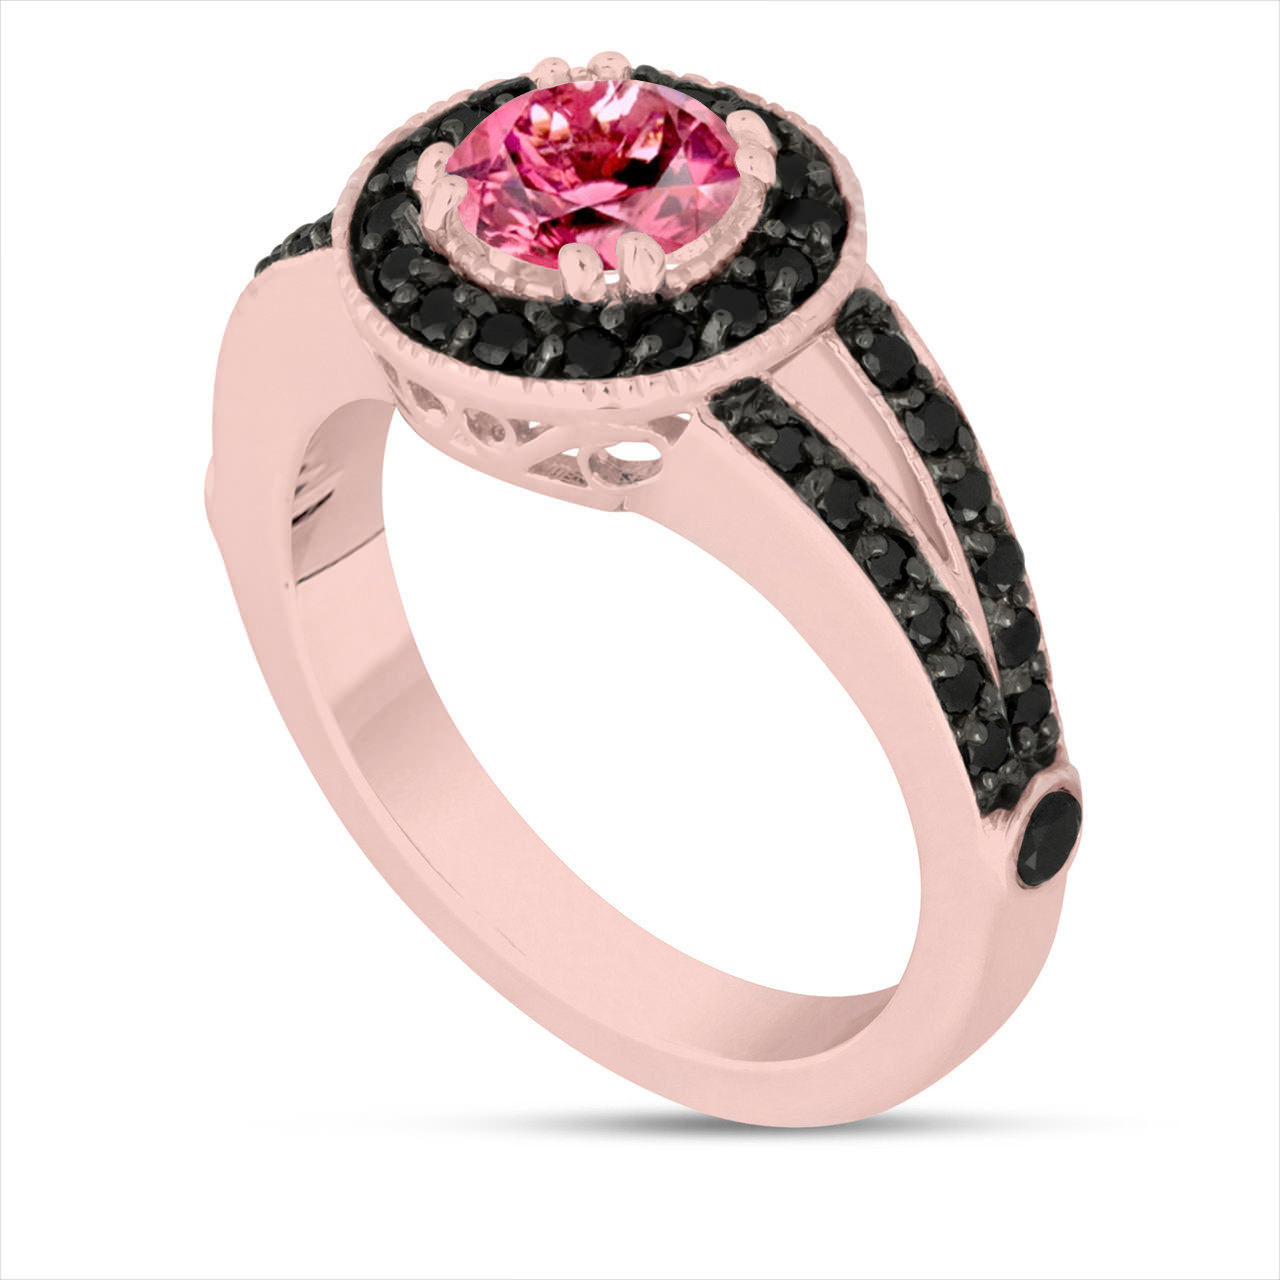 engagement diamond pink bg rings gold hart mobile taylor rose